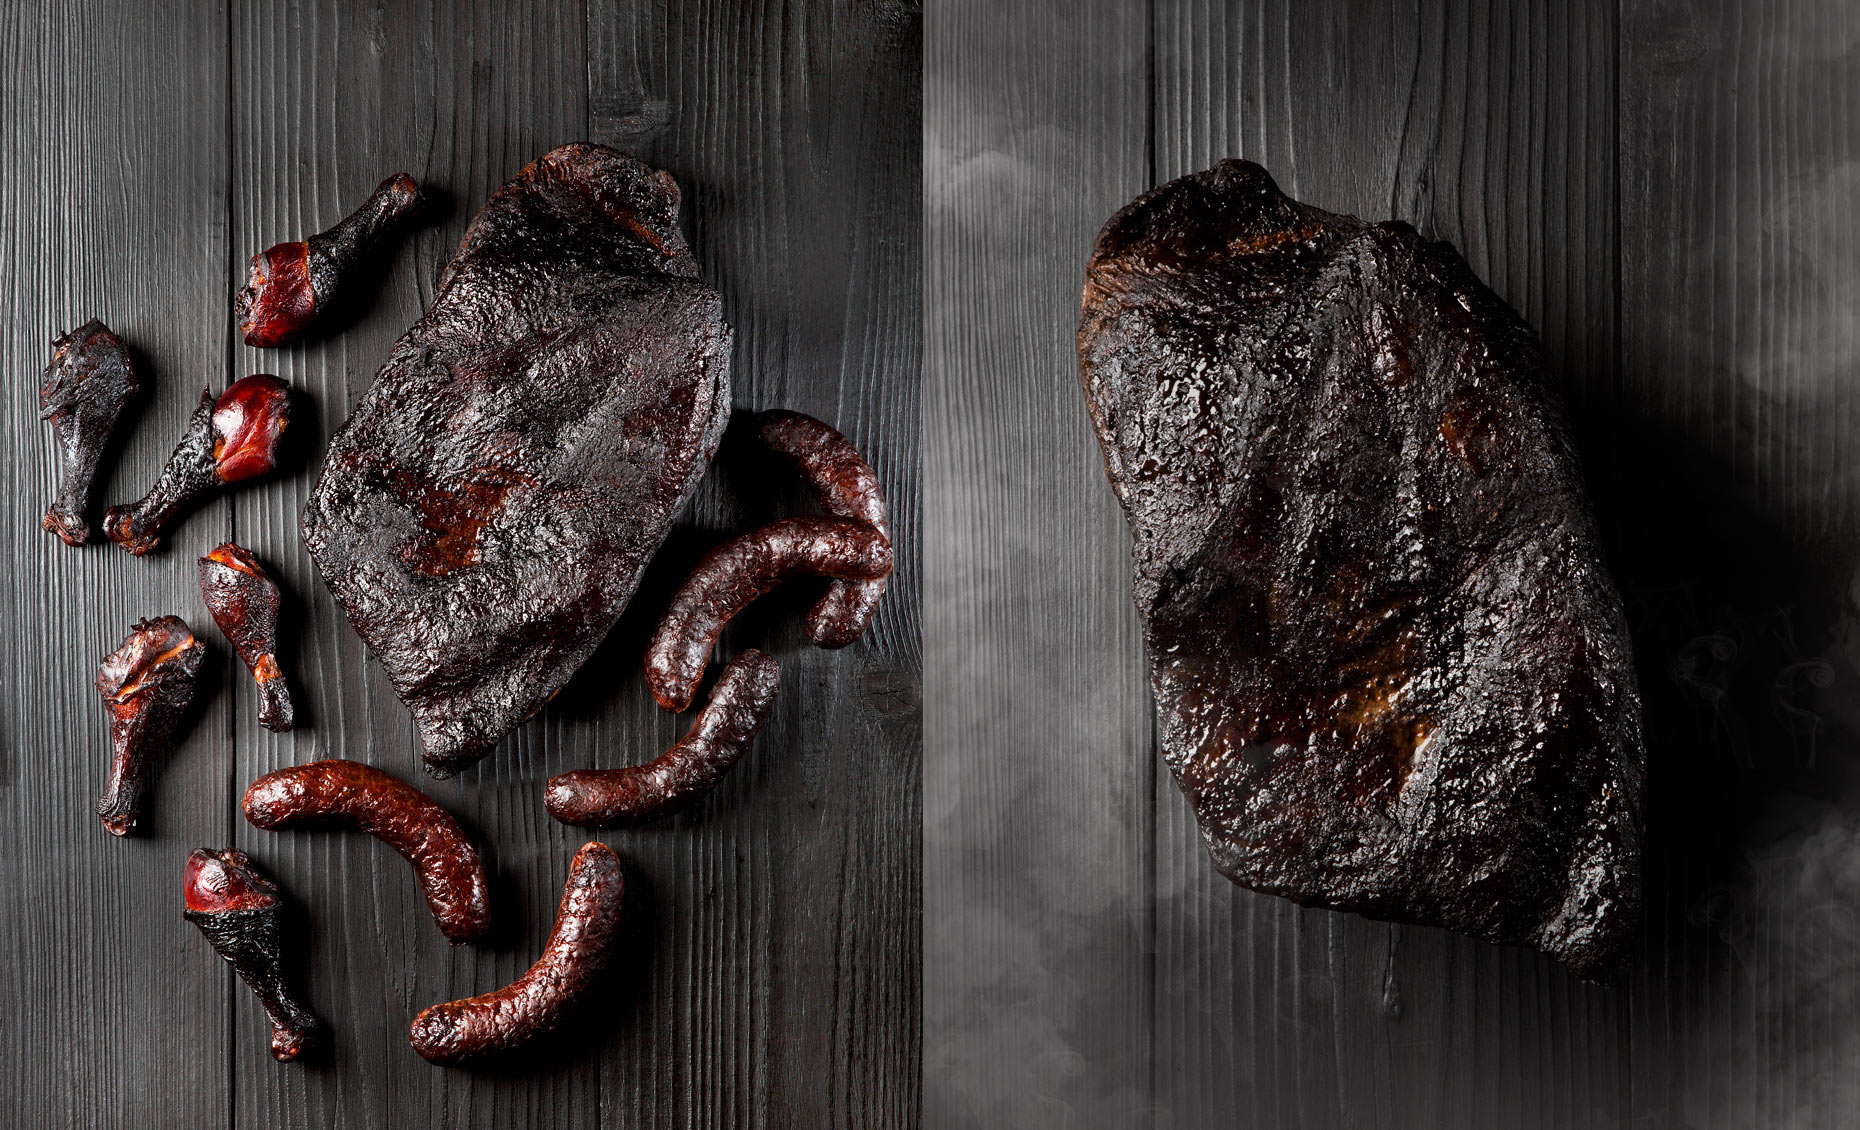 Smoked Blackened Meats and Sausage, Rose Hodges Food Photographer